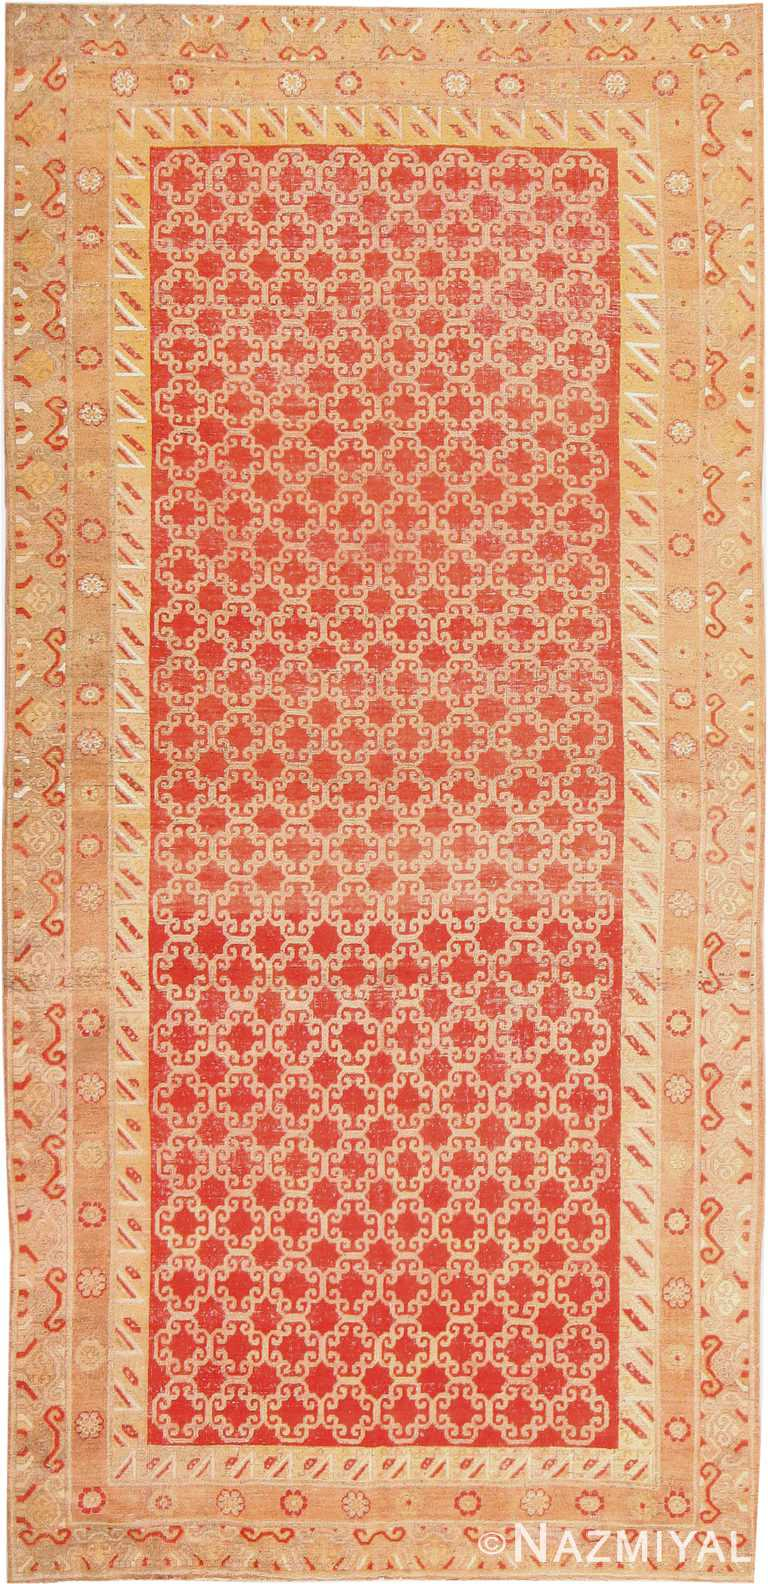 Long and Narrow Sunny Red Antique Khotan Rug #41865 by Nazmiyal Antique Rugs